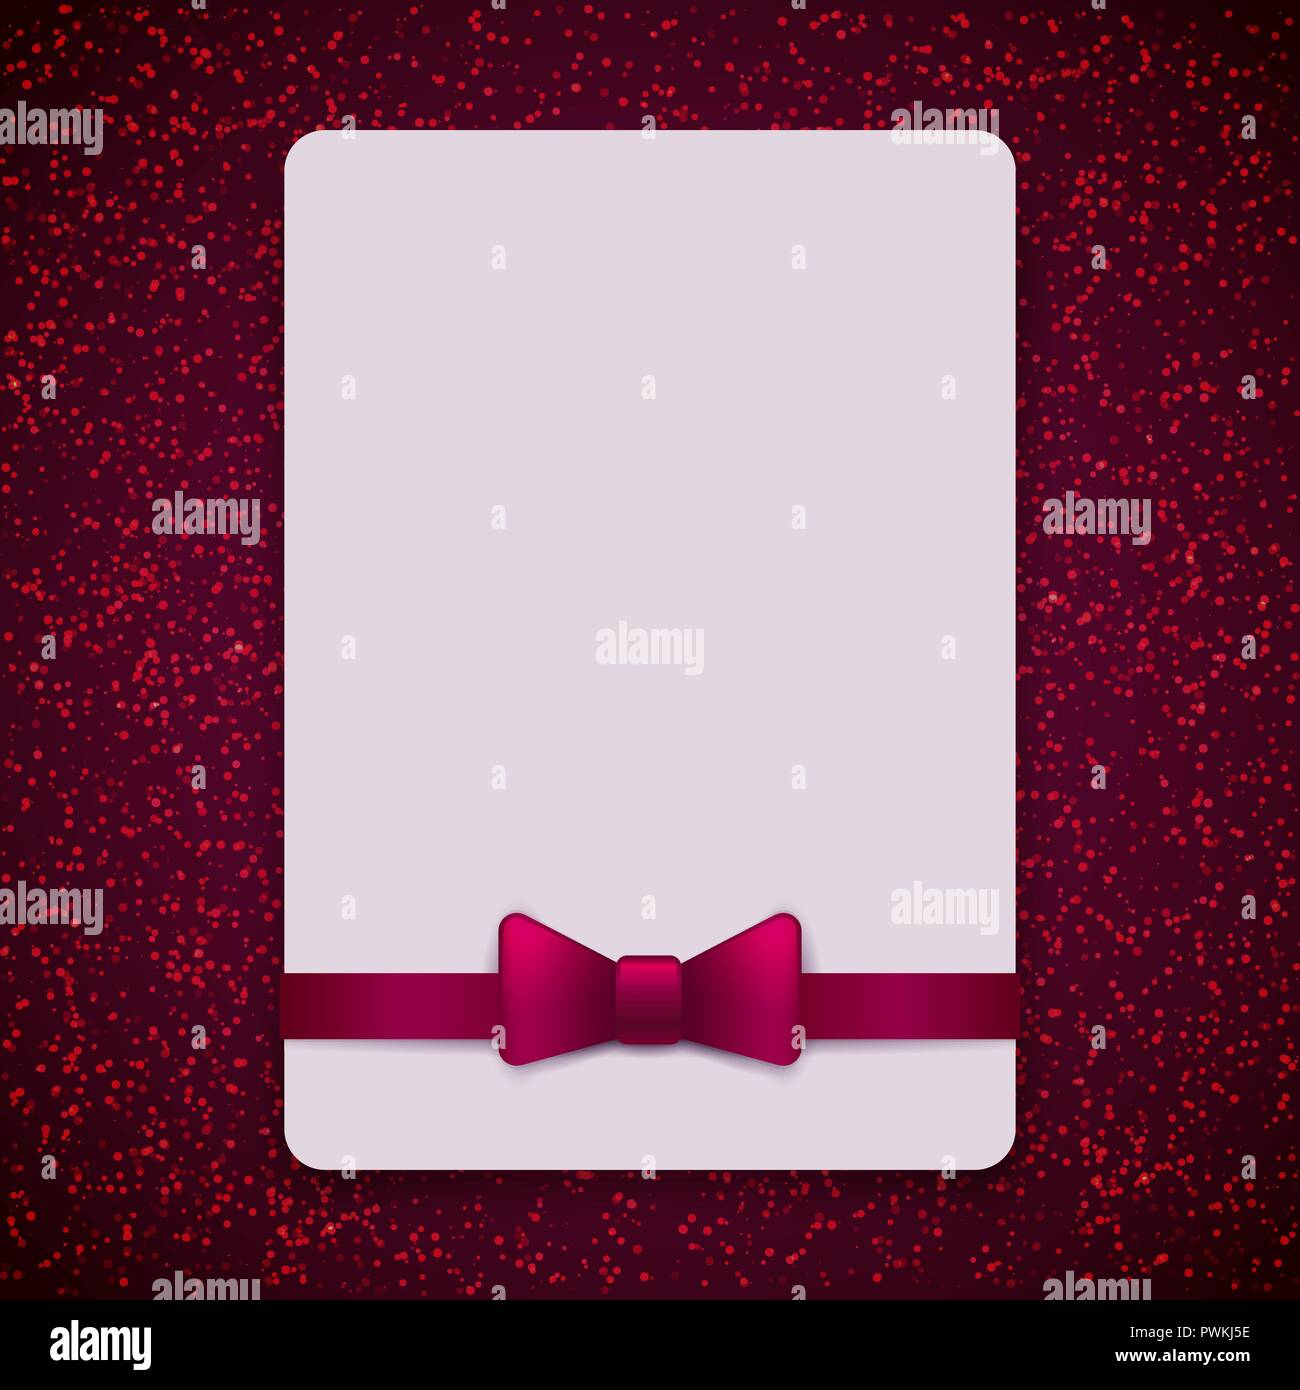 Vintage Greeting Card Template With Bow And Ribbon Vector